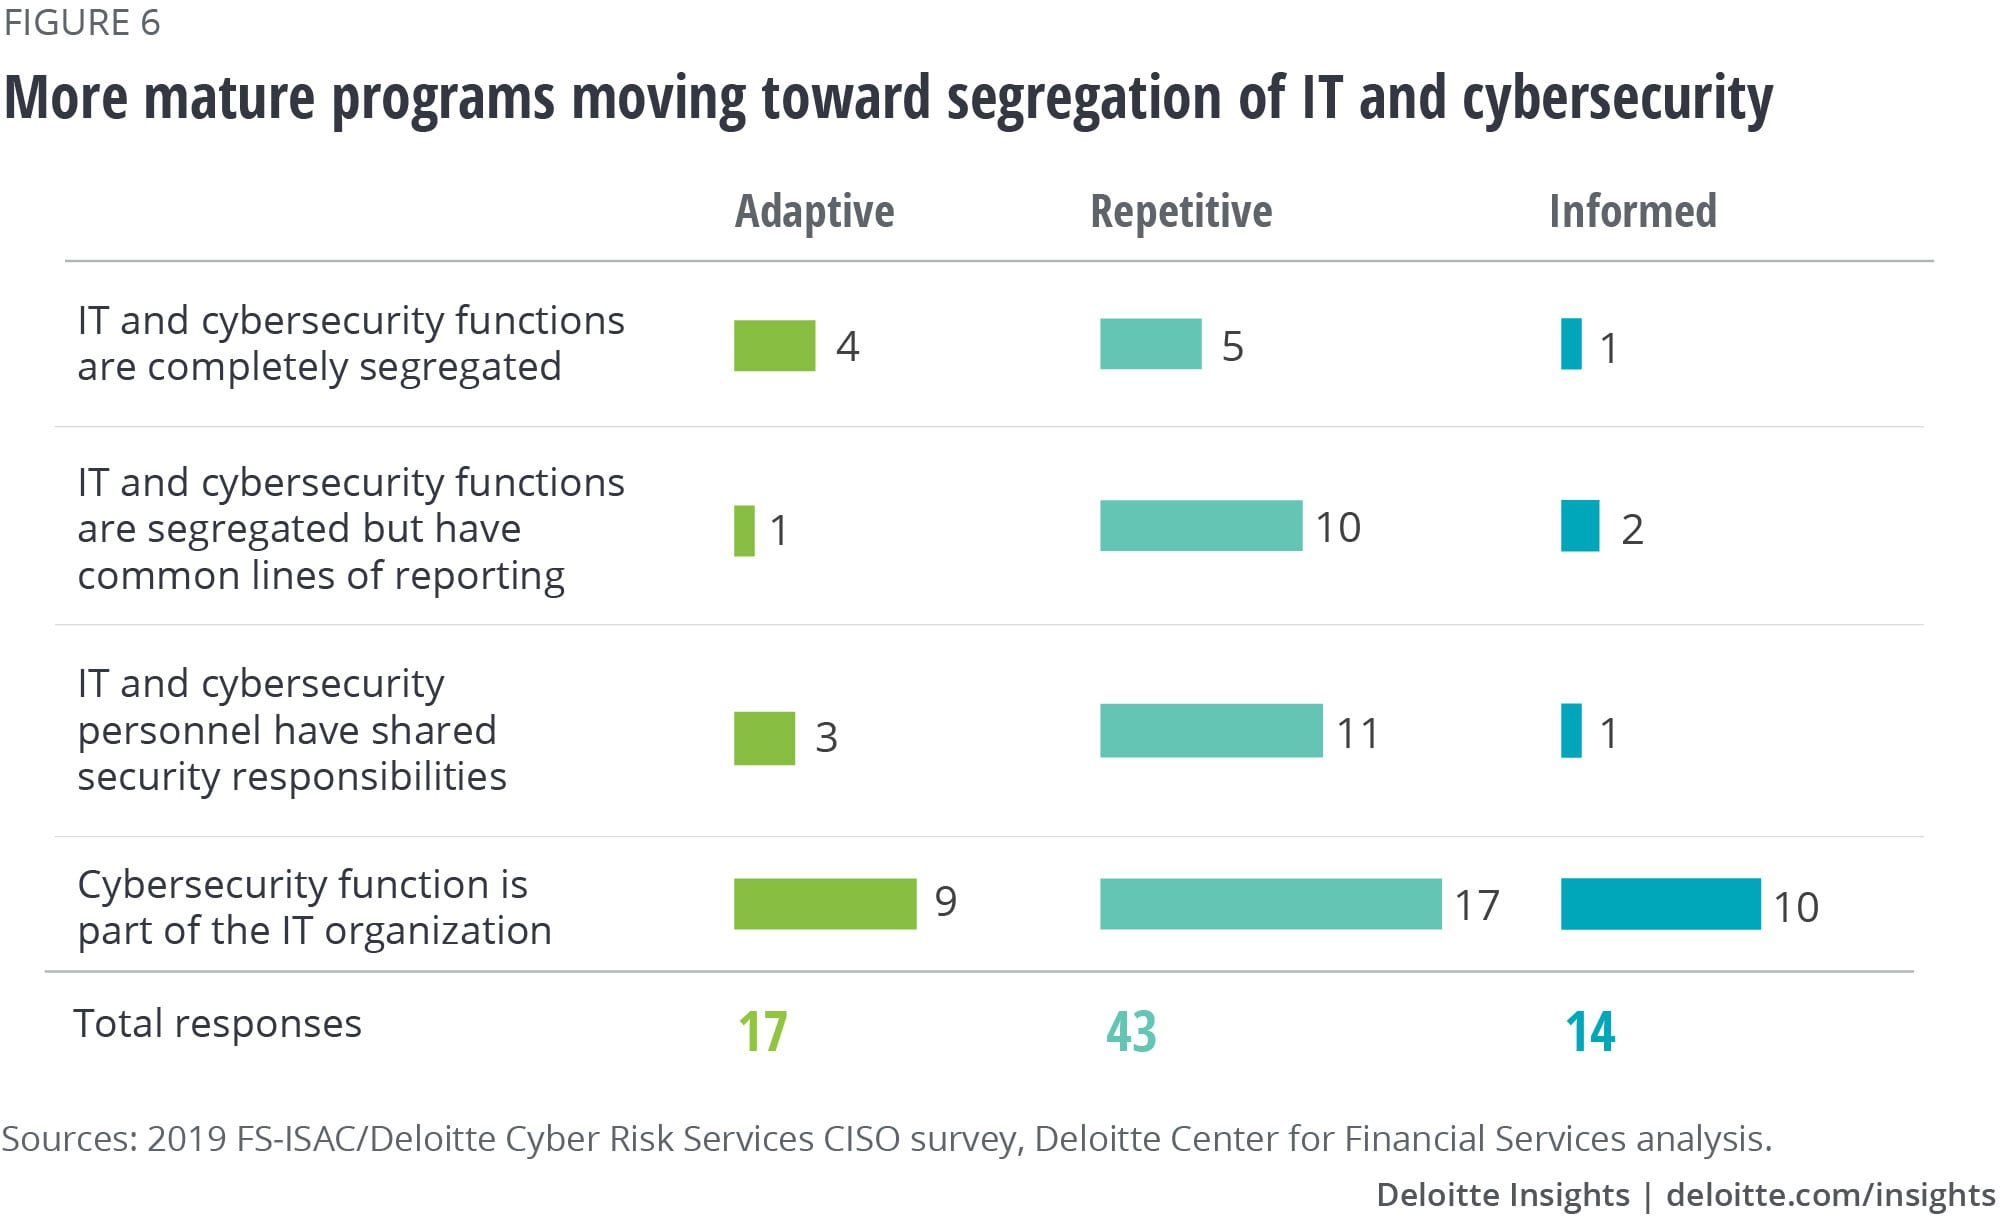 More mature programs moving toward segregation of IT and cybersecurity